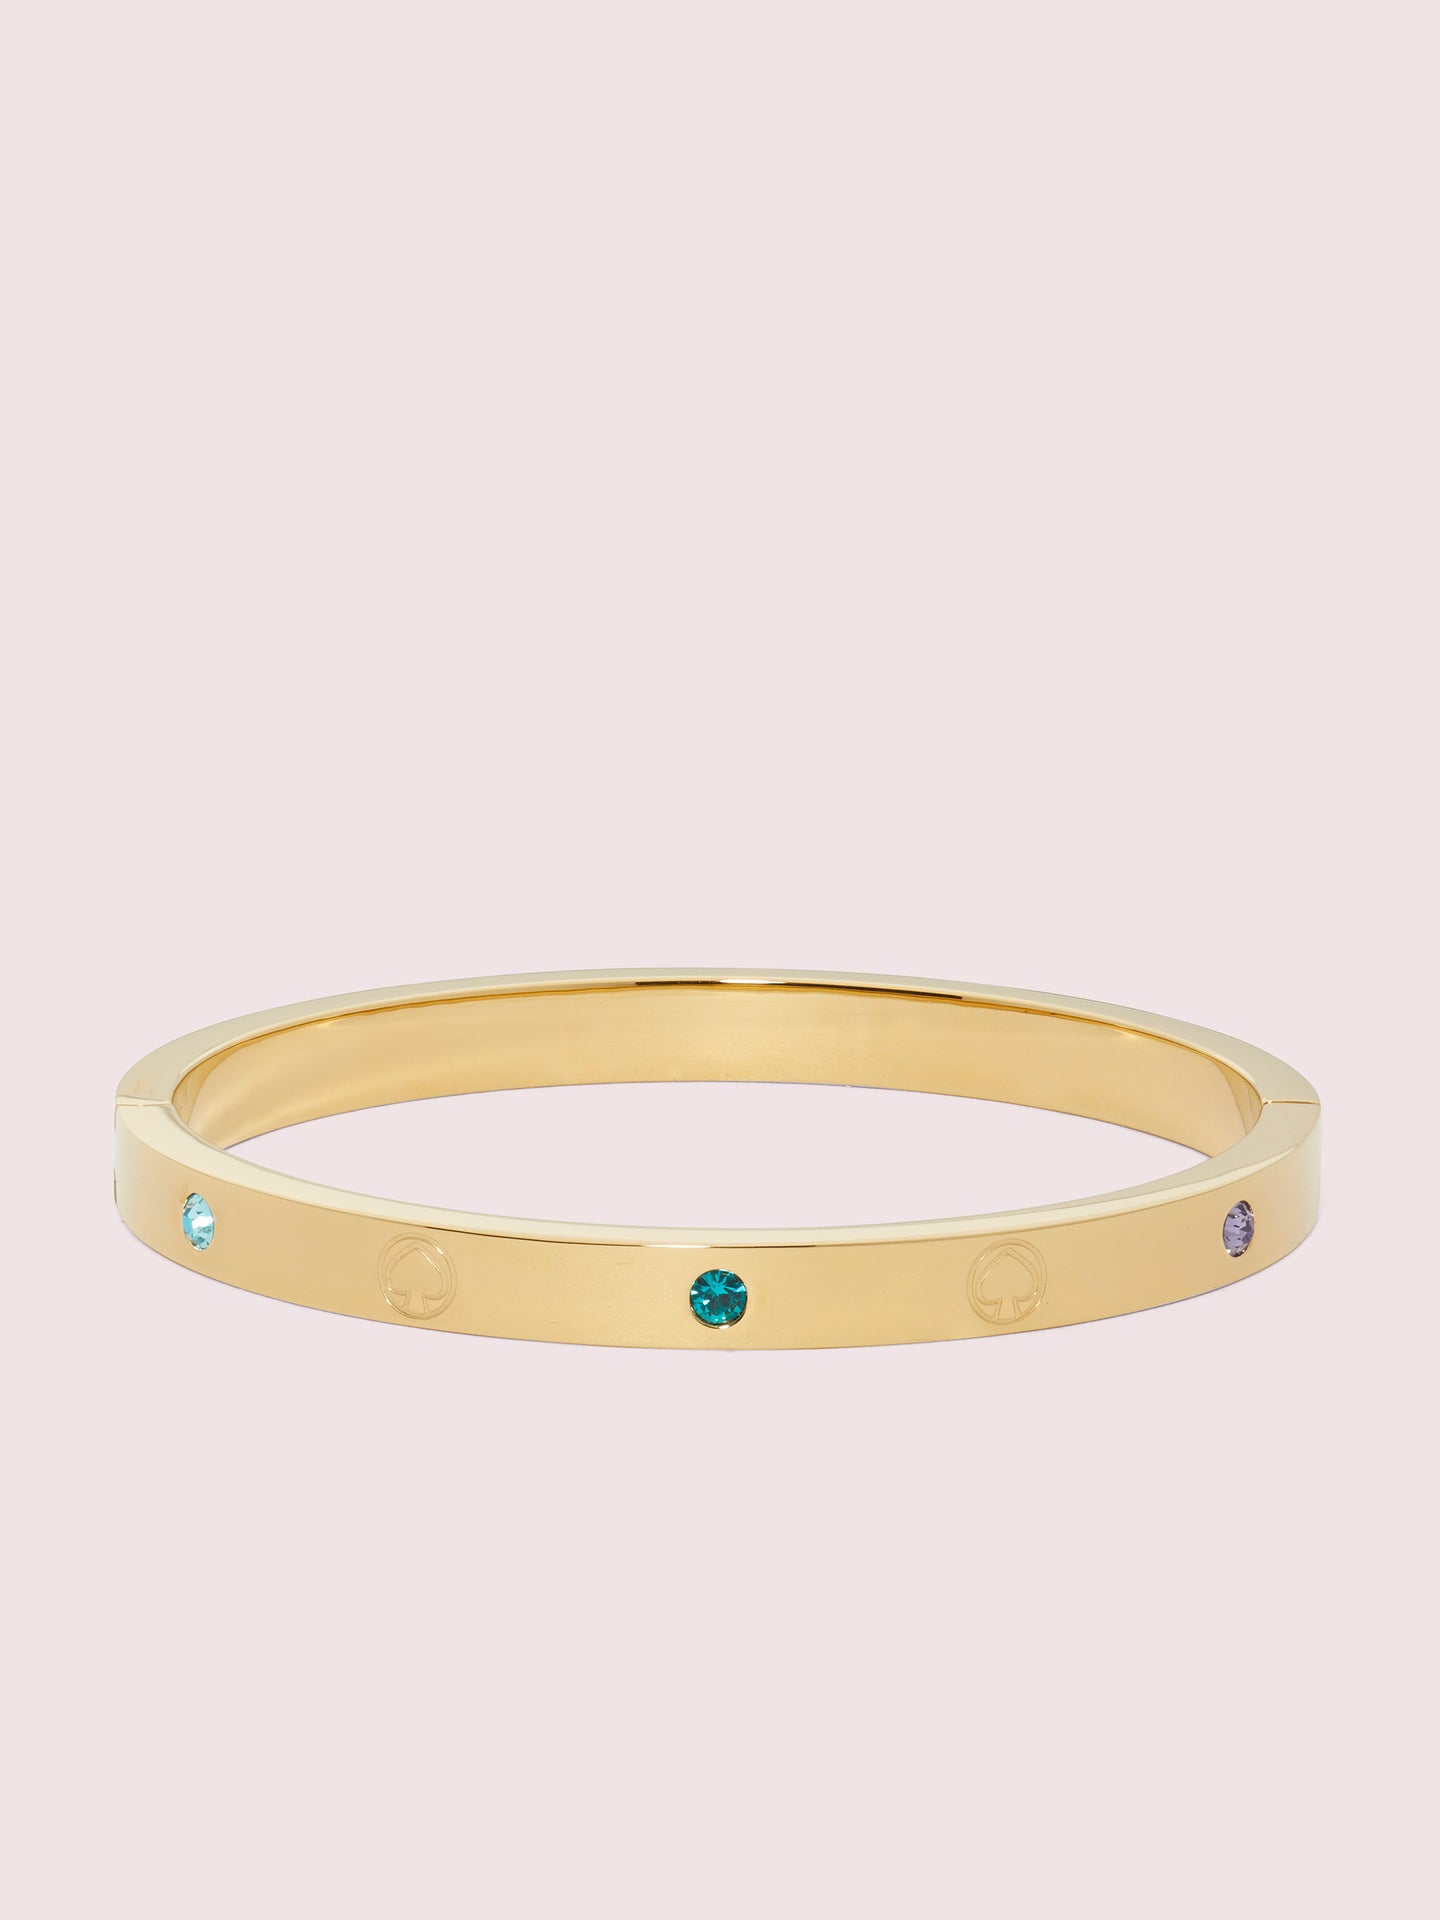 INFINITE SPADE ENGRAVED SPADE BANGLE